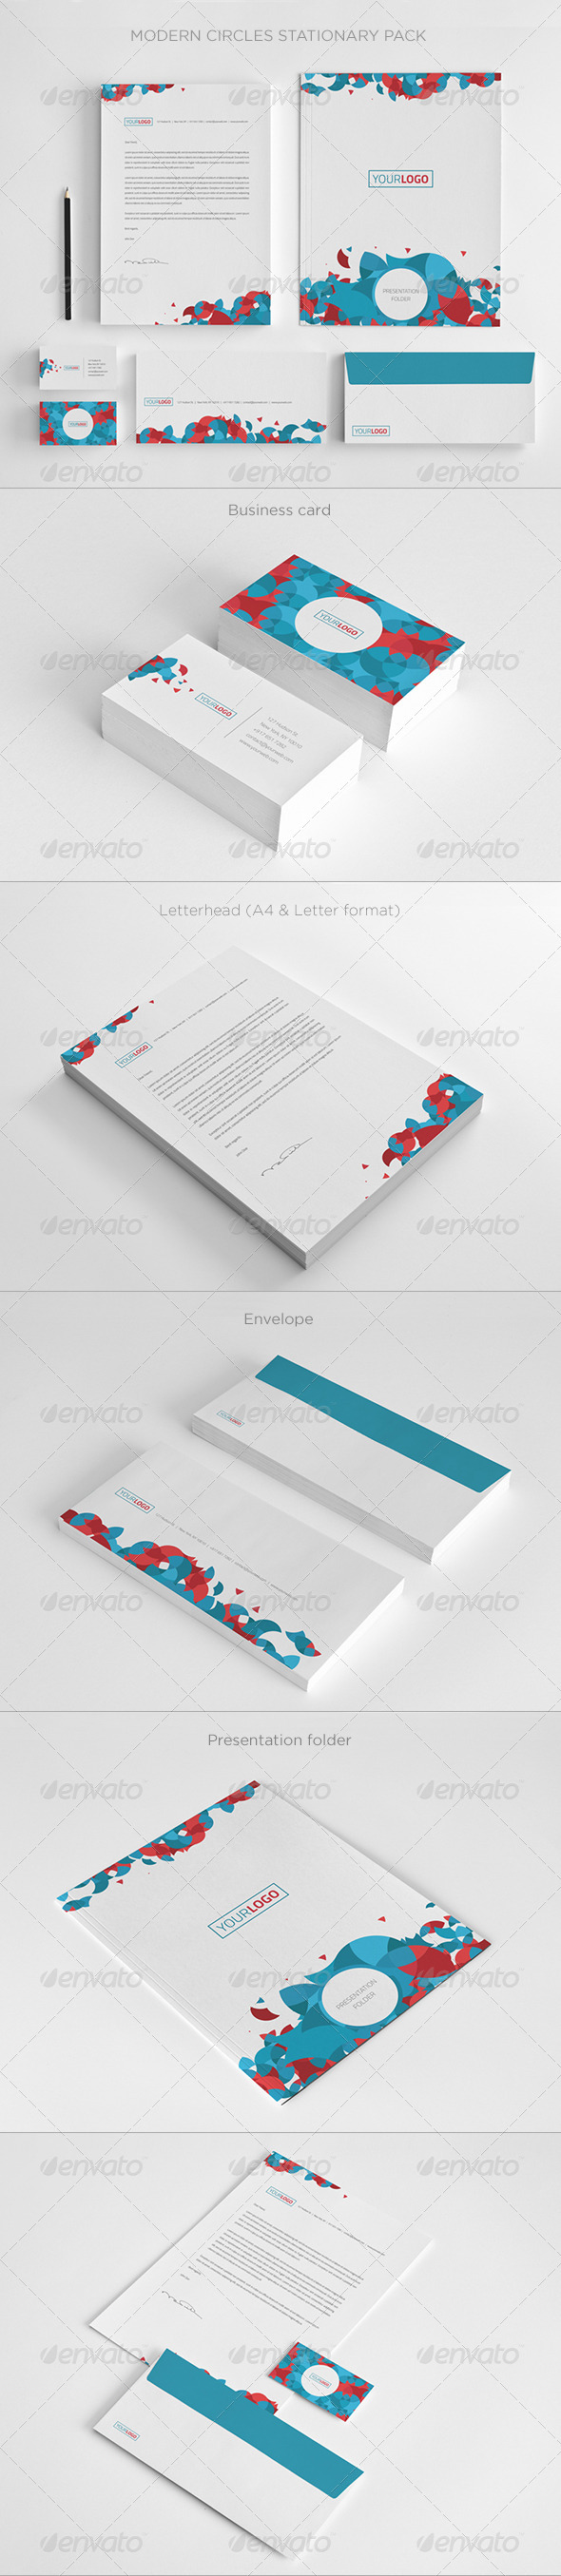 GraphicRiver Modern Circles Stationary 5522773